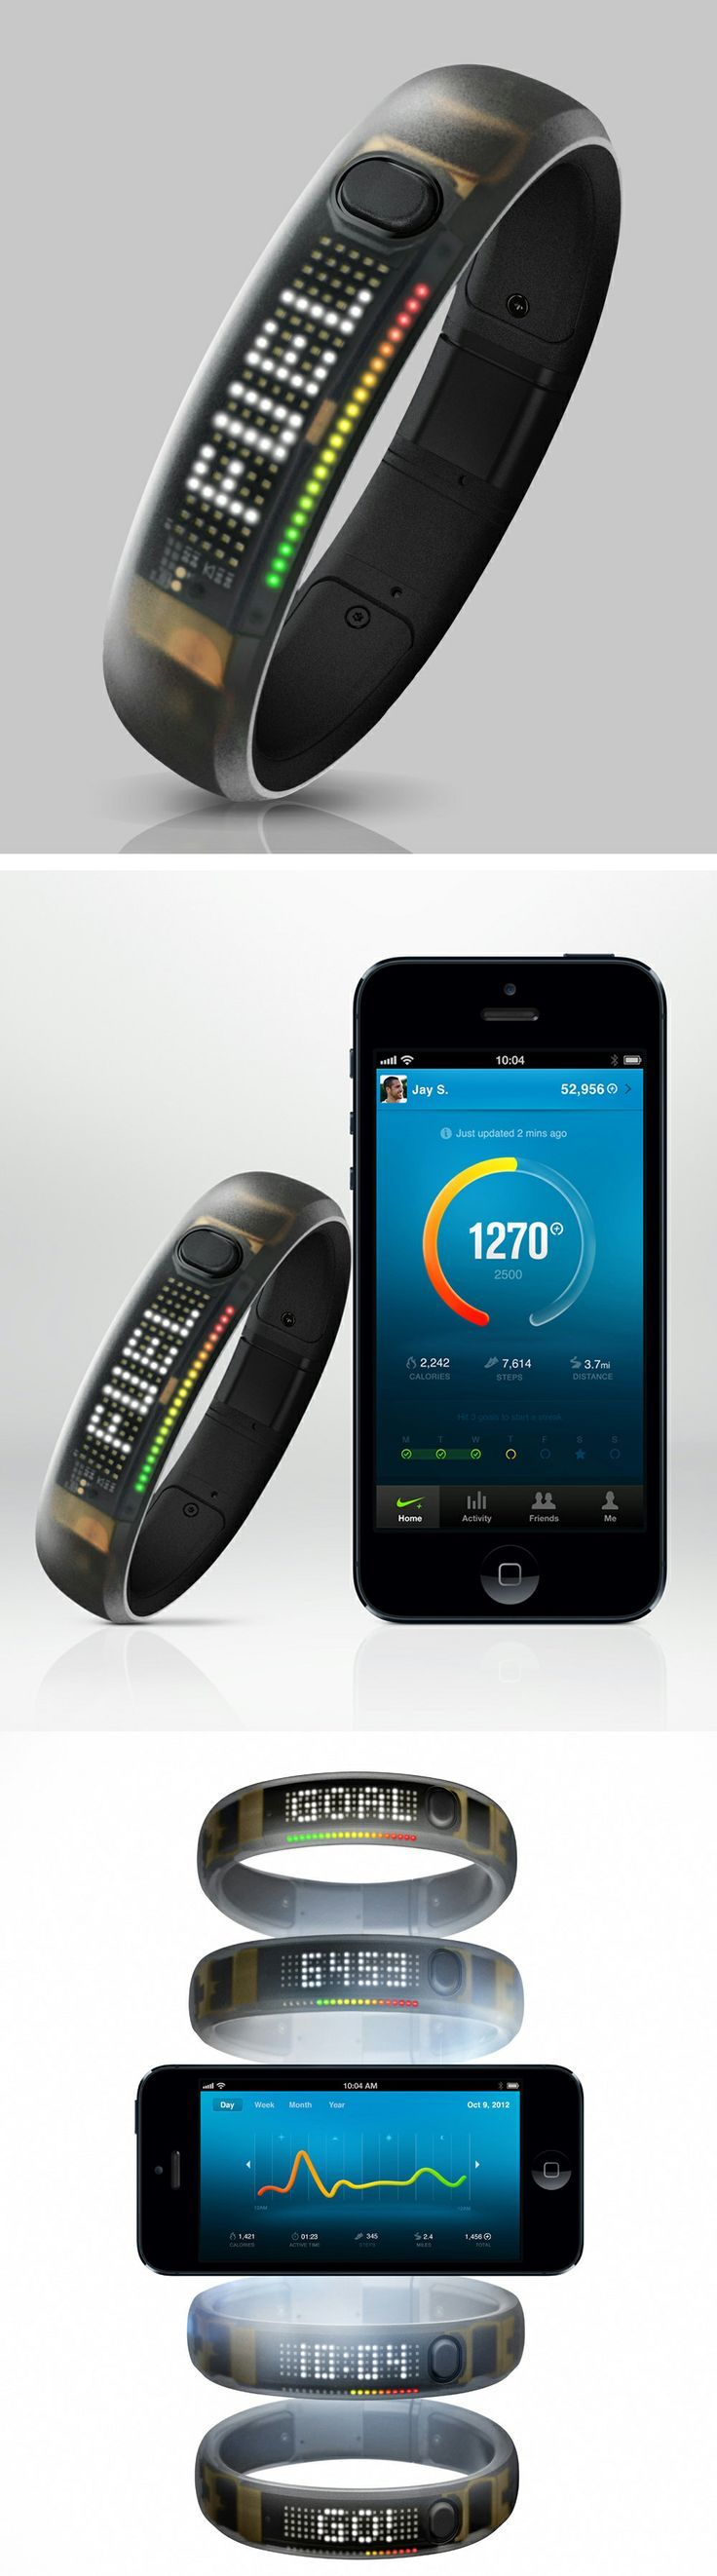 FuelBand - Bracelet that tracks your active life with NikeFuel— a universal way to measure movement for all kinds of activities. Set daily goal, get moving, and see your progress along the way. #newyearsresolution #healthy